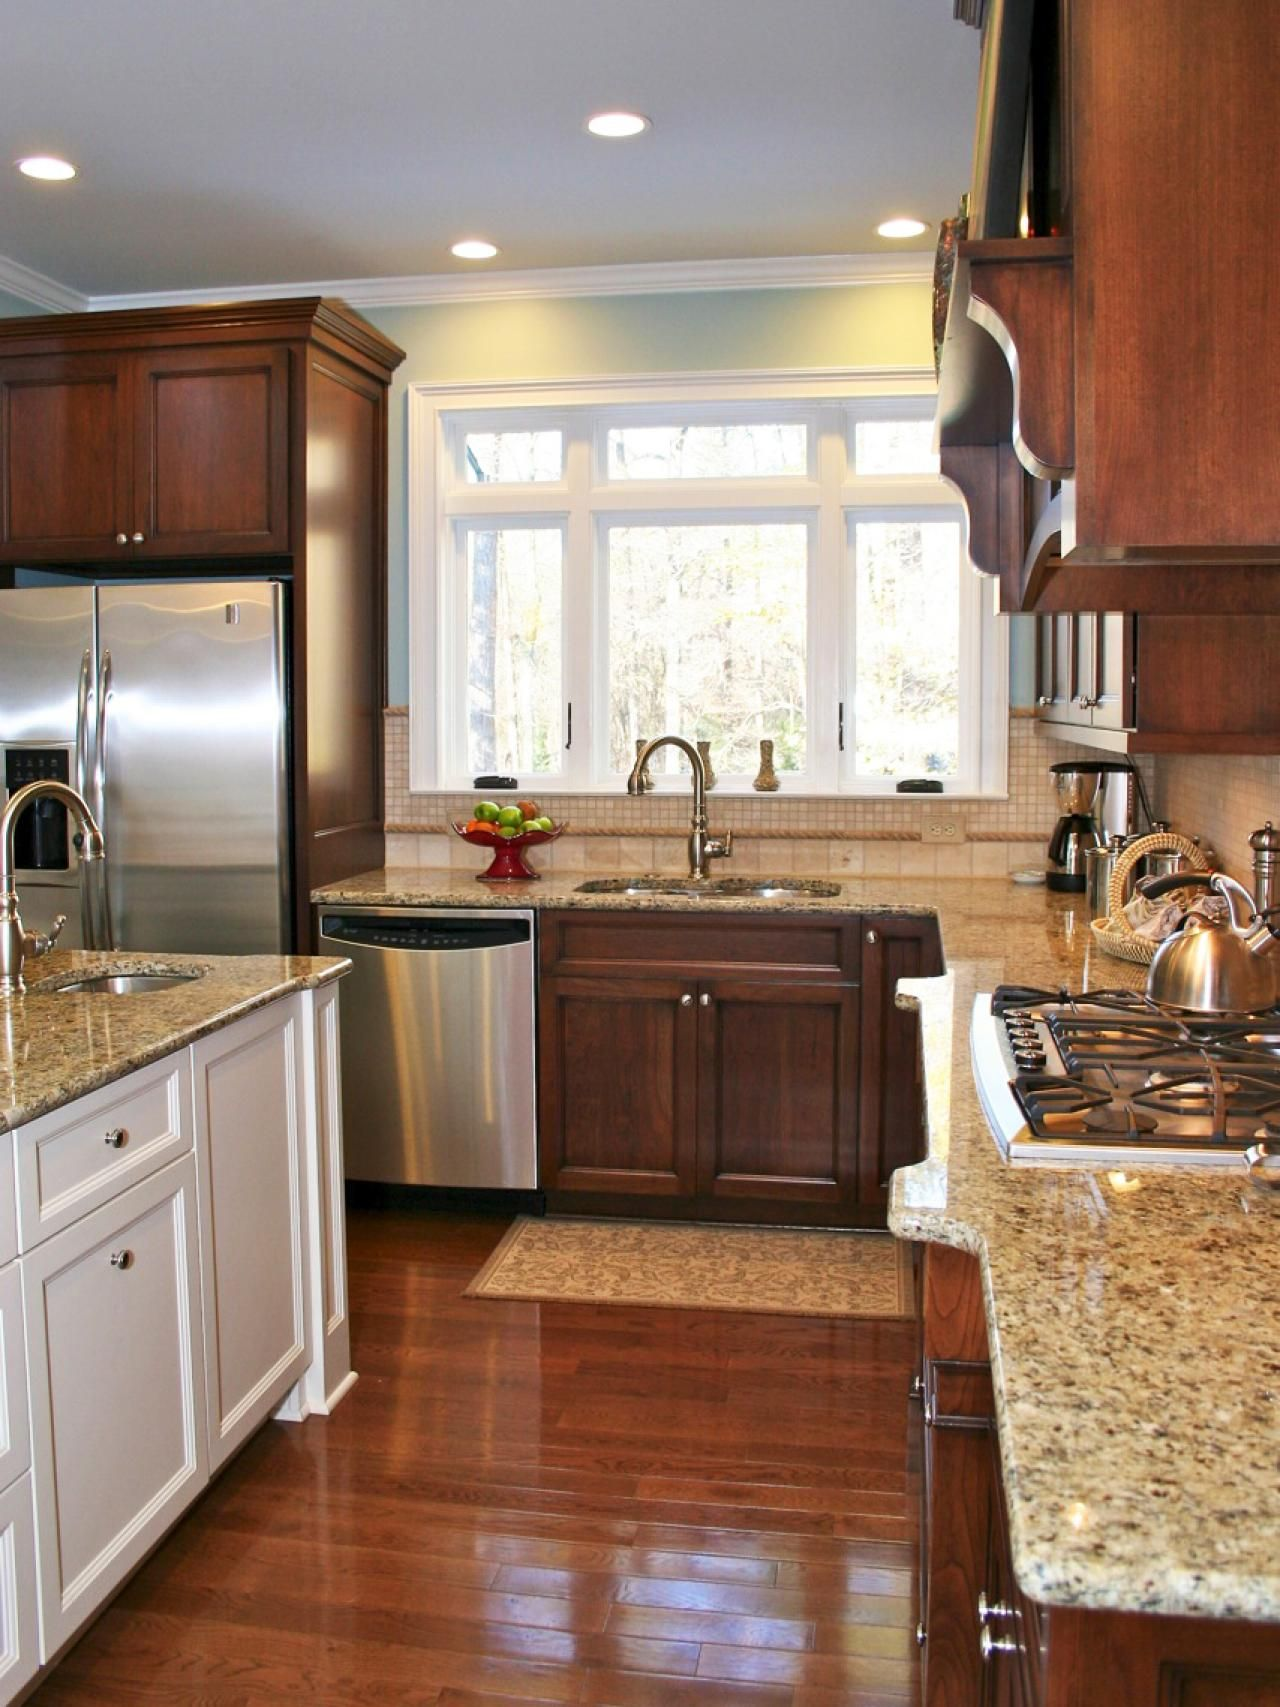 cherry wood kitchen island premade islands this 39s granite countertops give the traditional